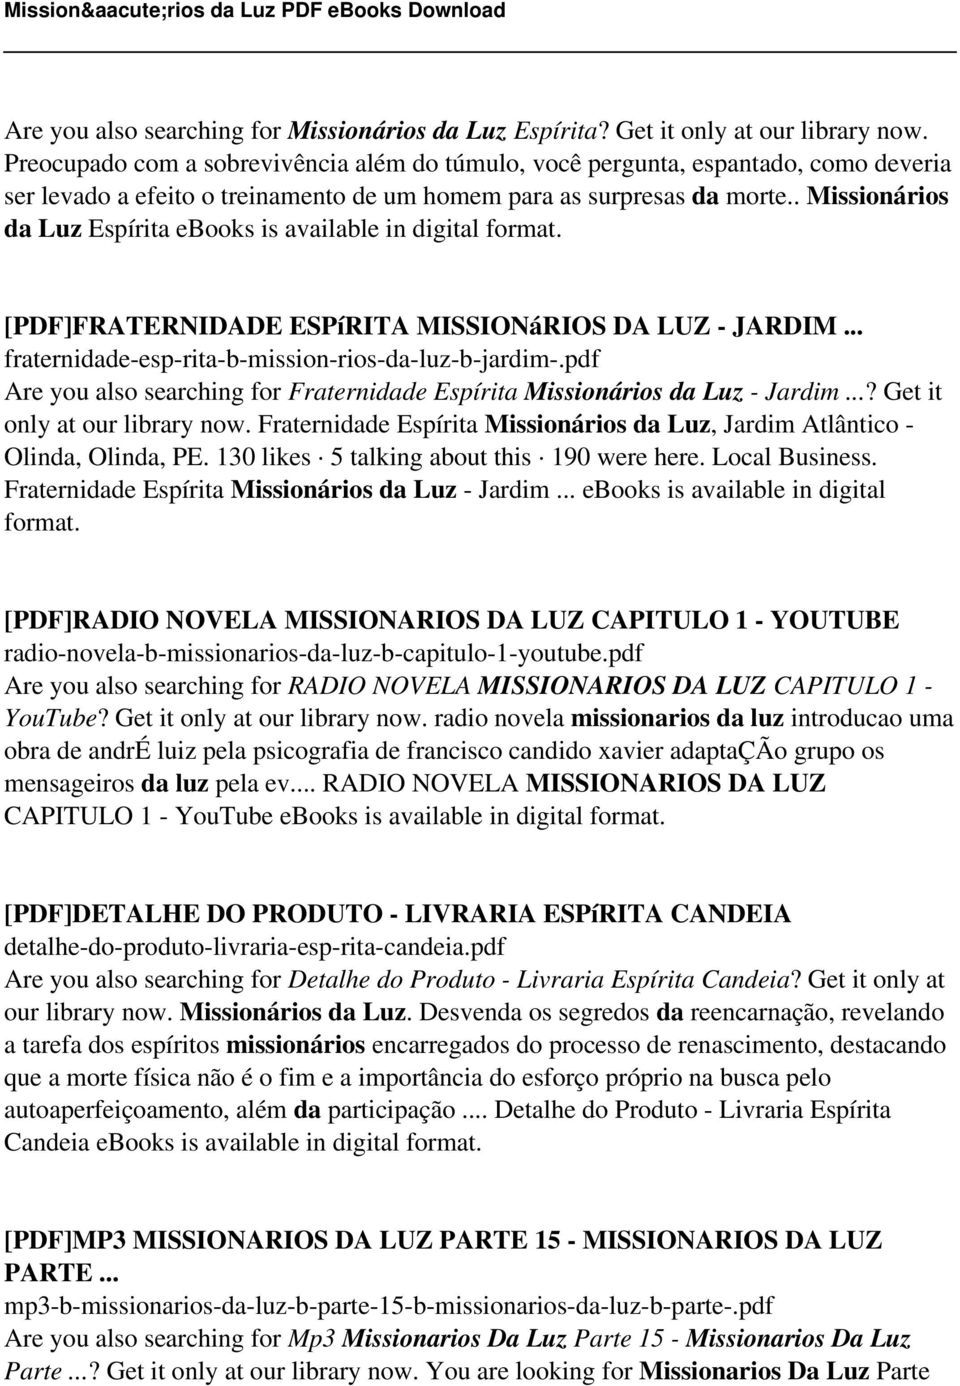 Missionrios da luz pdf pdf missionrios da luz esprita ebooks is available in digital format pdf fraternidade fandeluxe Choice Image